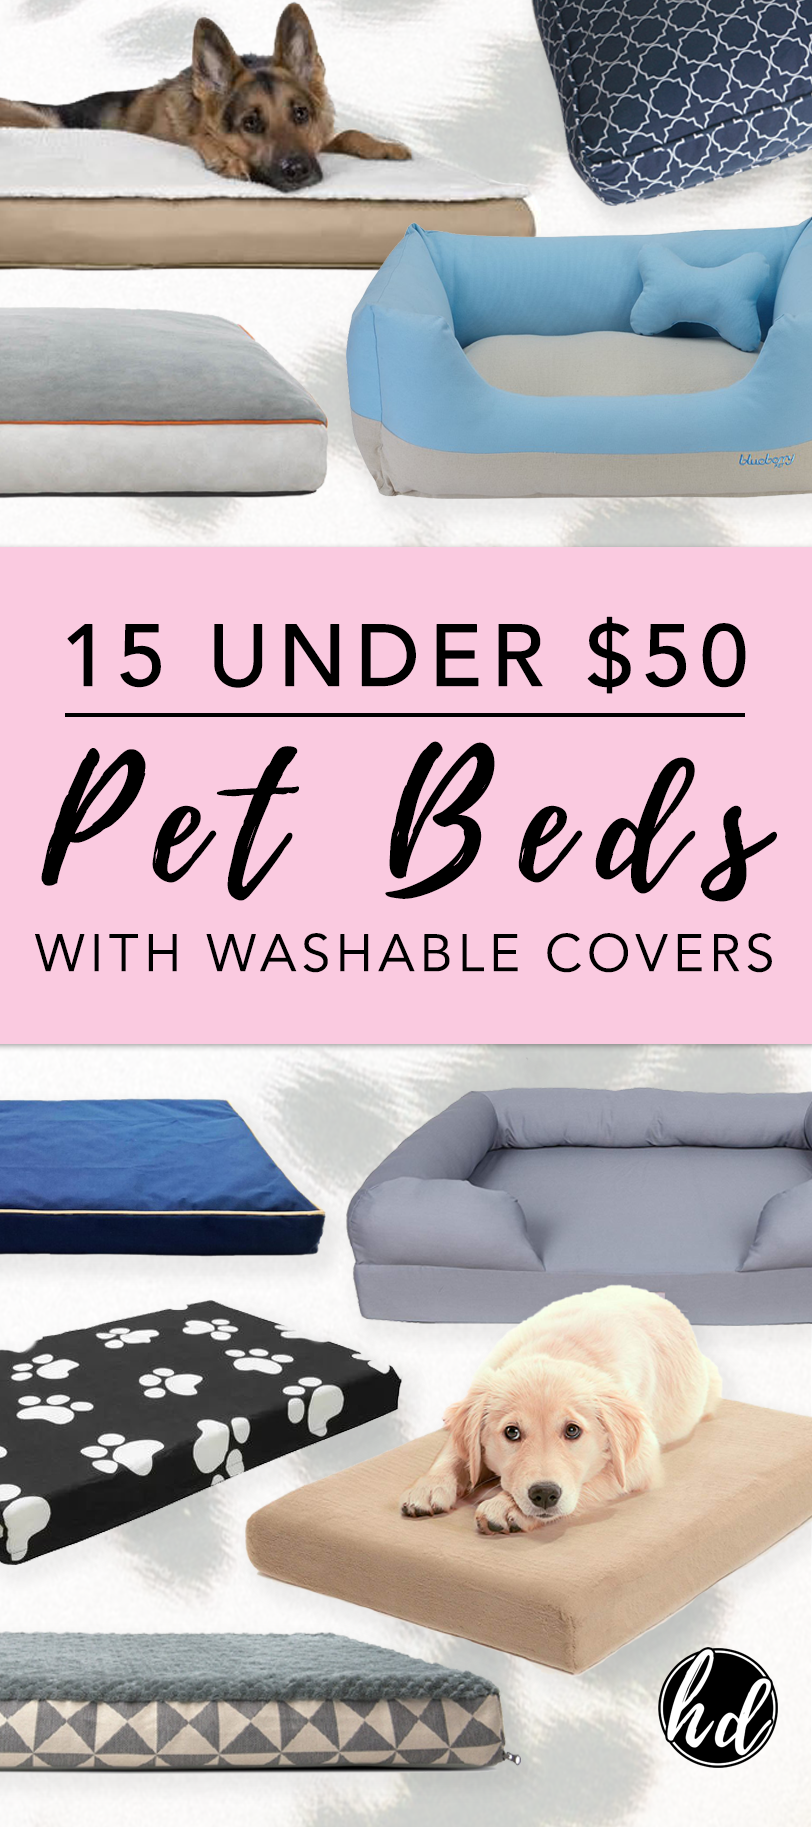 15 UNDER $50: Pet Beds With Washable Covers – Hey, Djangles. Best affordable easy-care dog beds, washable dog bed covers, small, medium and large dog bed ideas, orthopedic dog beds with washable covers, dog ideas, dog stuff. #dogbed #doglover